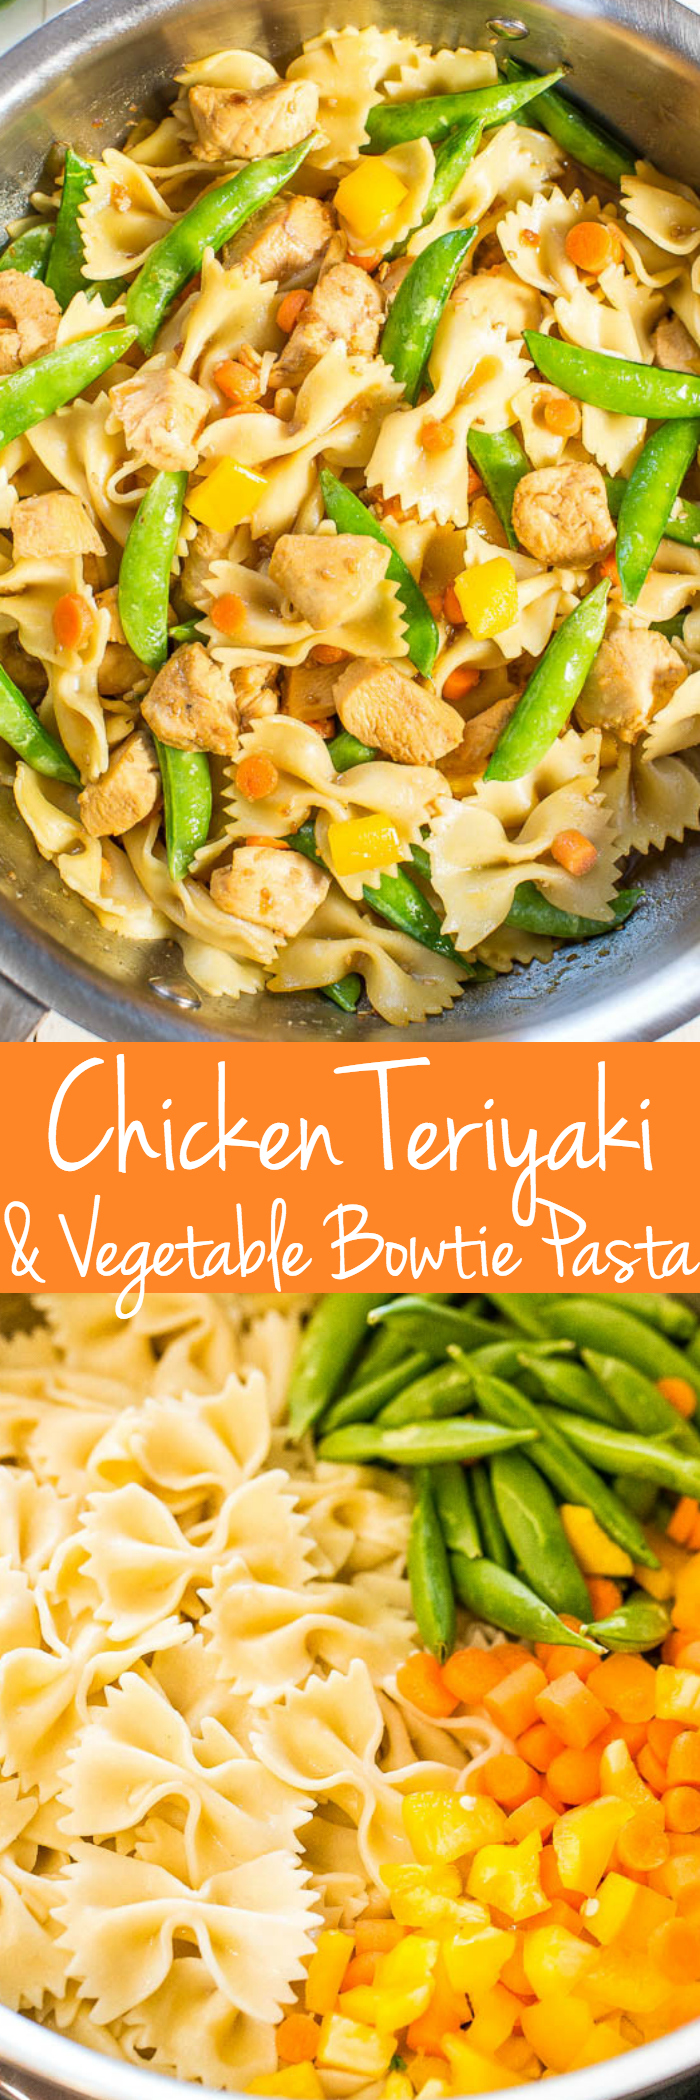 Teriyaki Chicken Pasta and Vegetable Bow Tie - Juicy chicken topped with teriyaki sauce with crispy, crispy vegetables! Healthy and easy 20-minute meal that's perfect for busy nights!